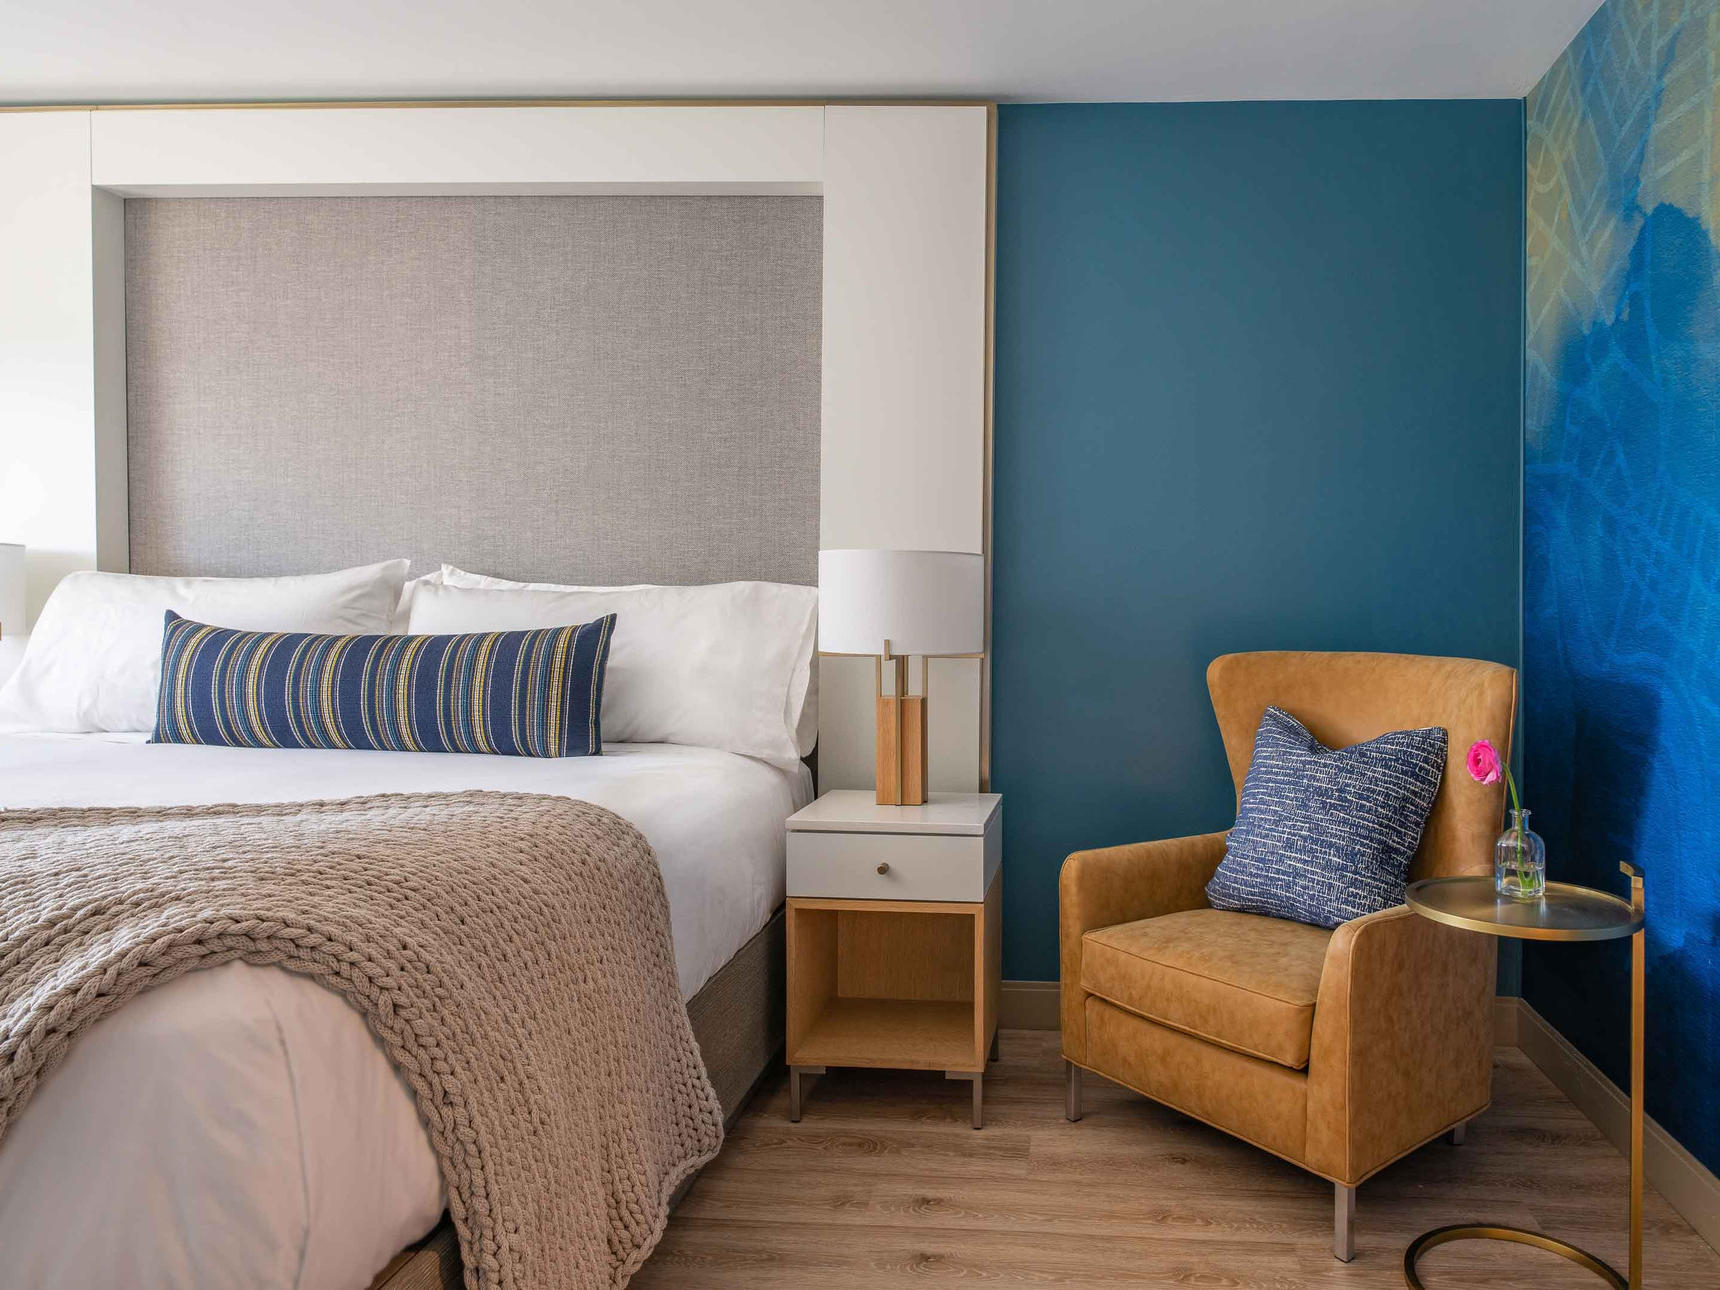 hotel room with bed and sofa chair